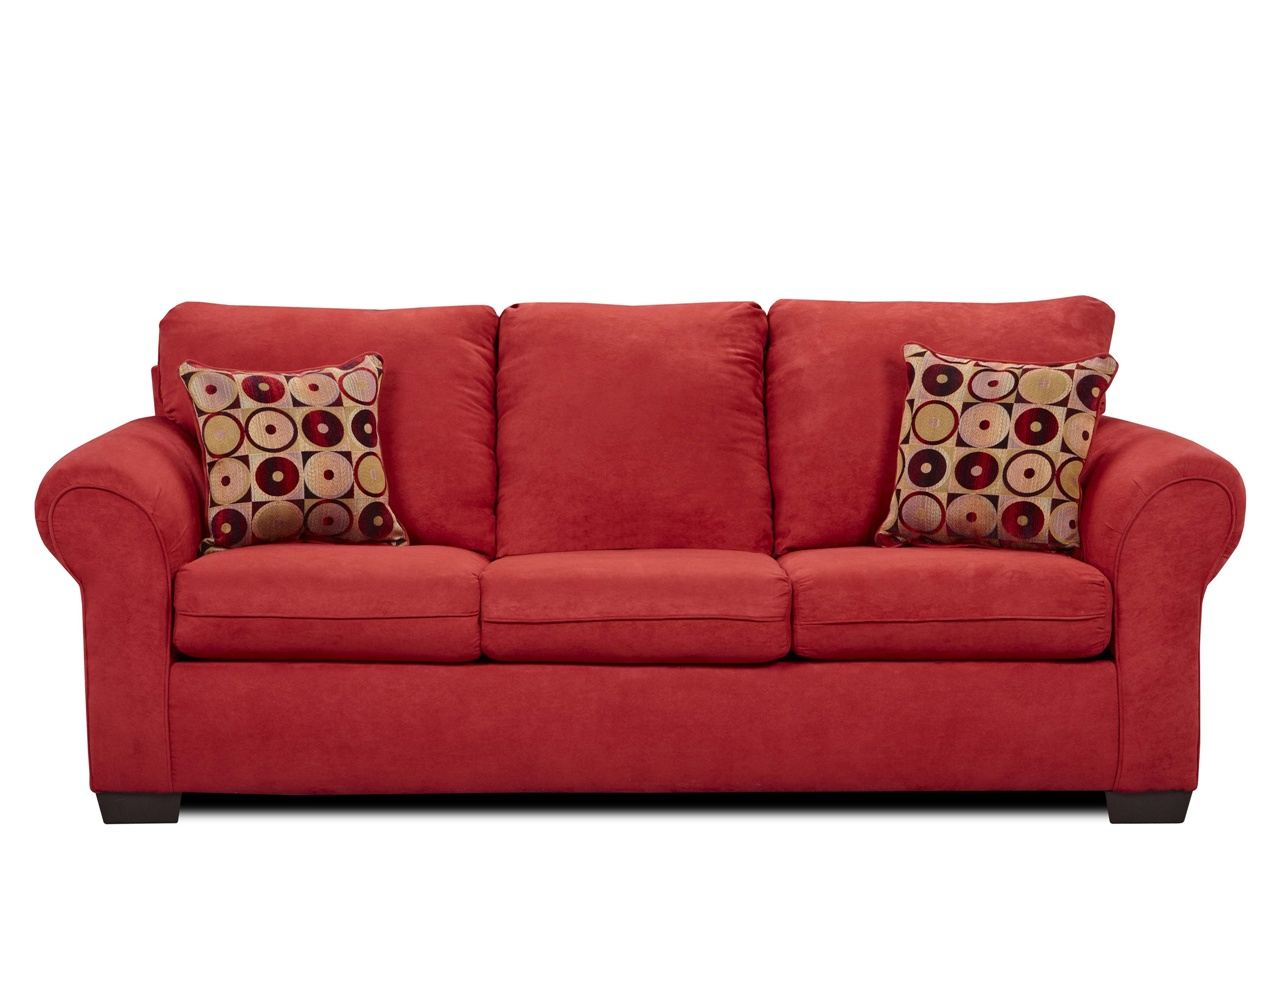 Cute cheapest couches available online couch sofa for Cheap couches